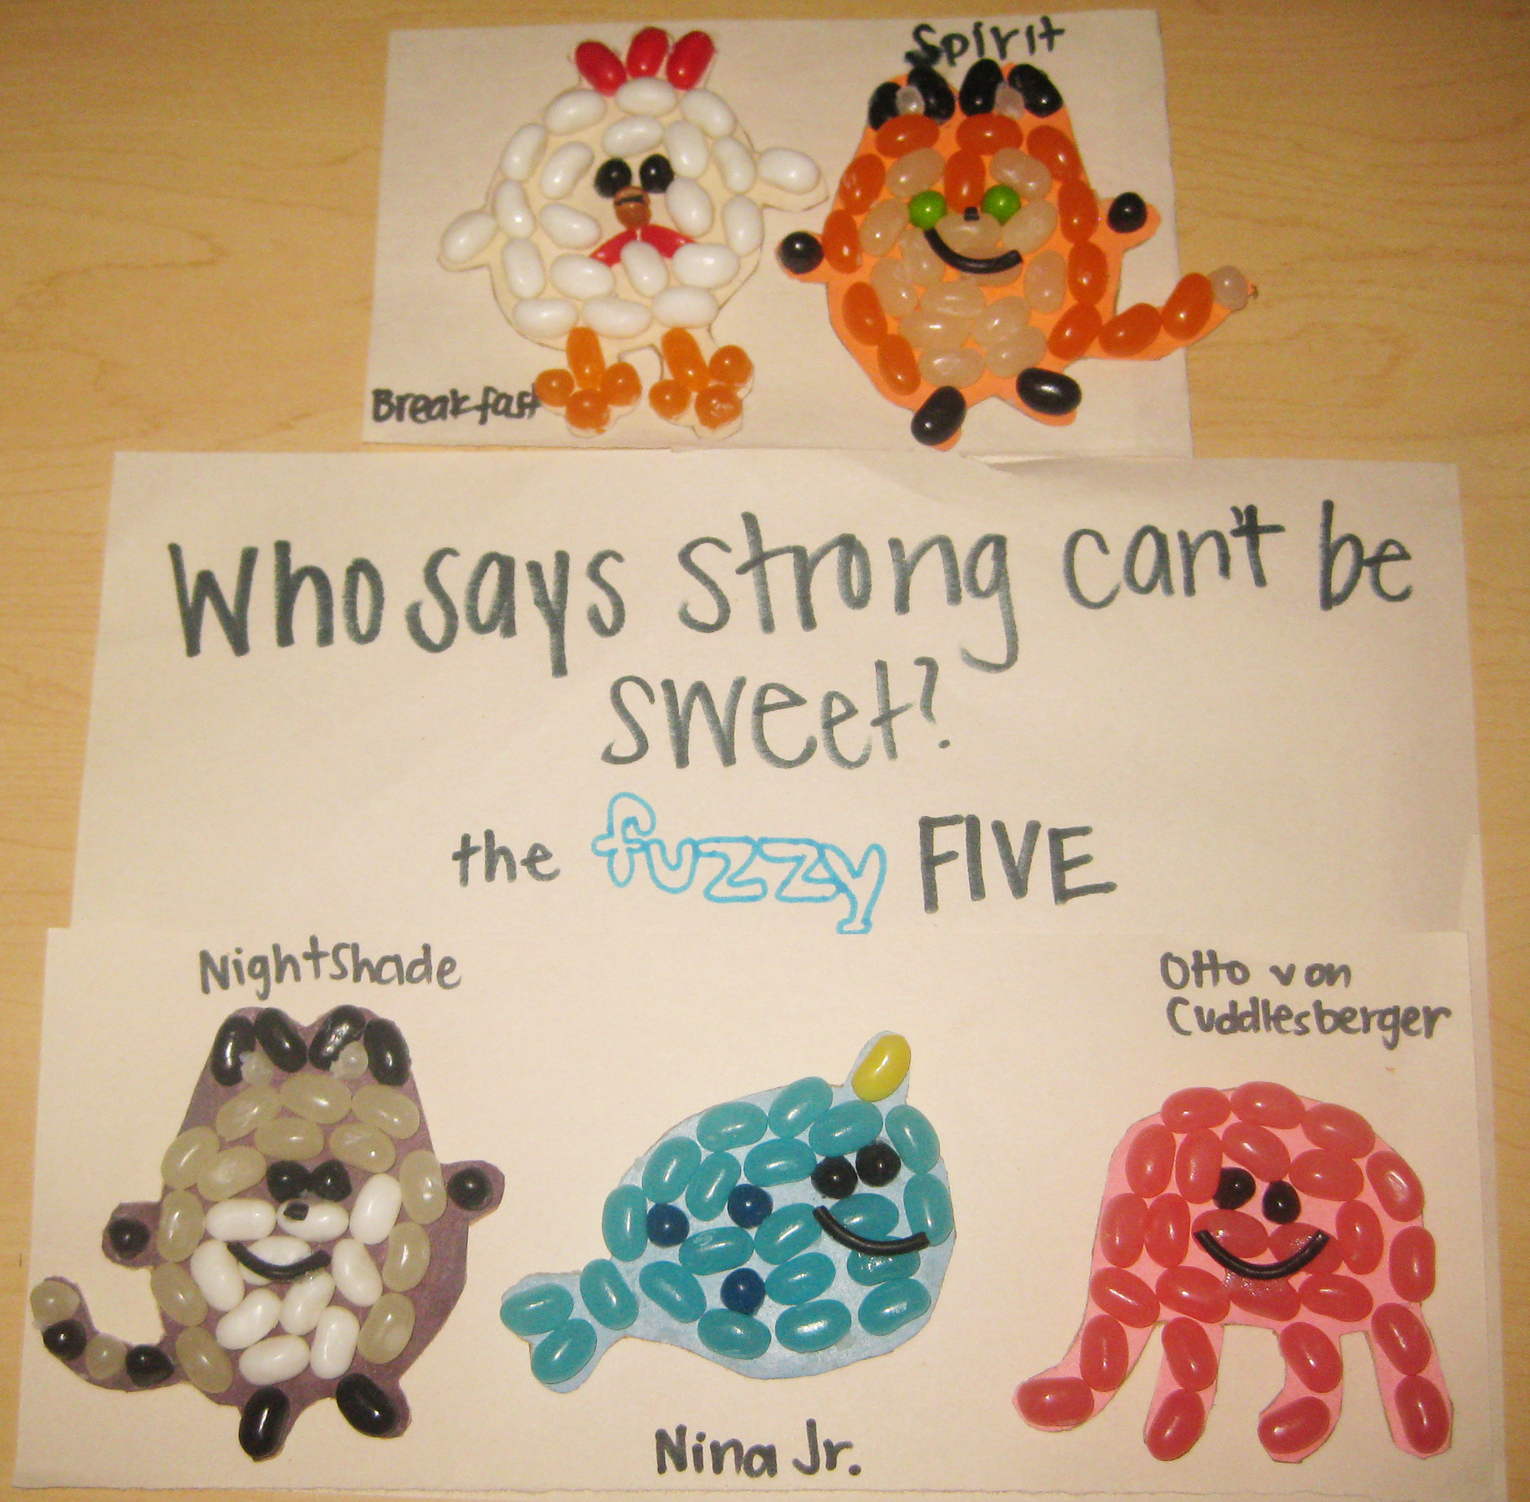 The Fuzzy Five Jellybeans